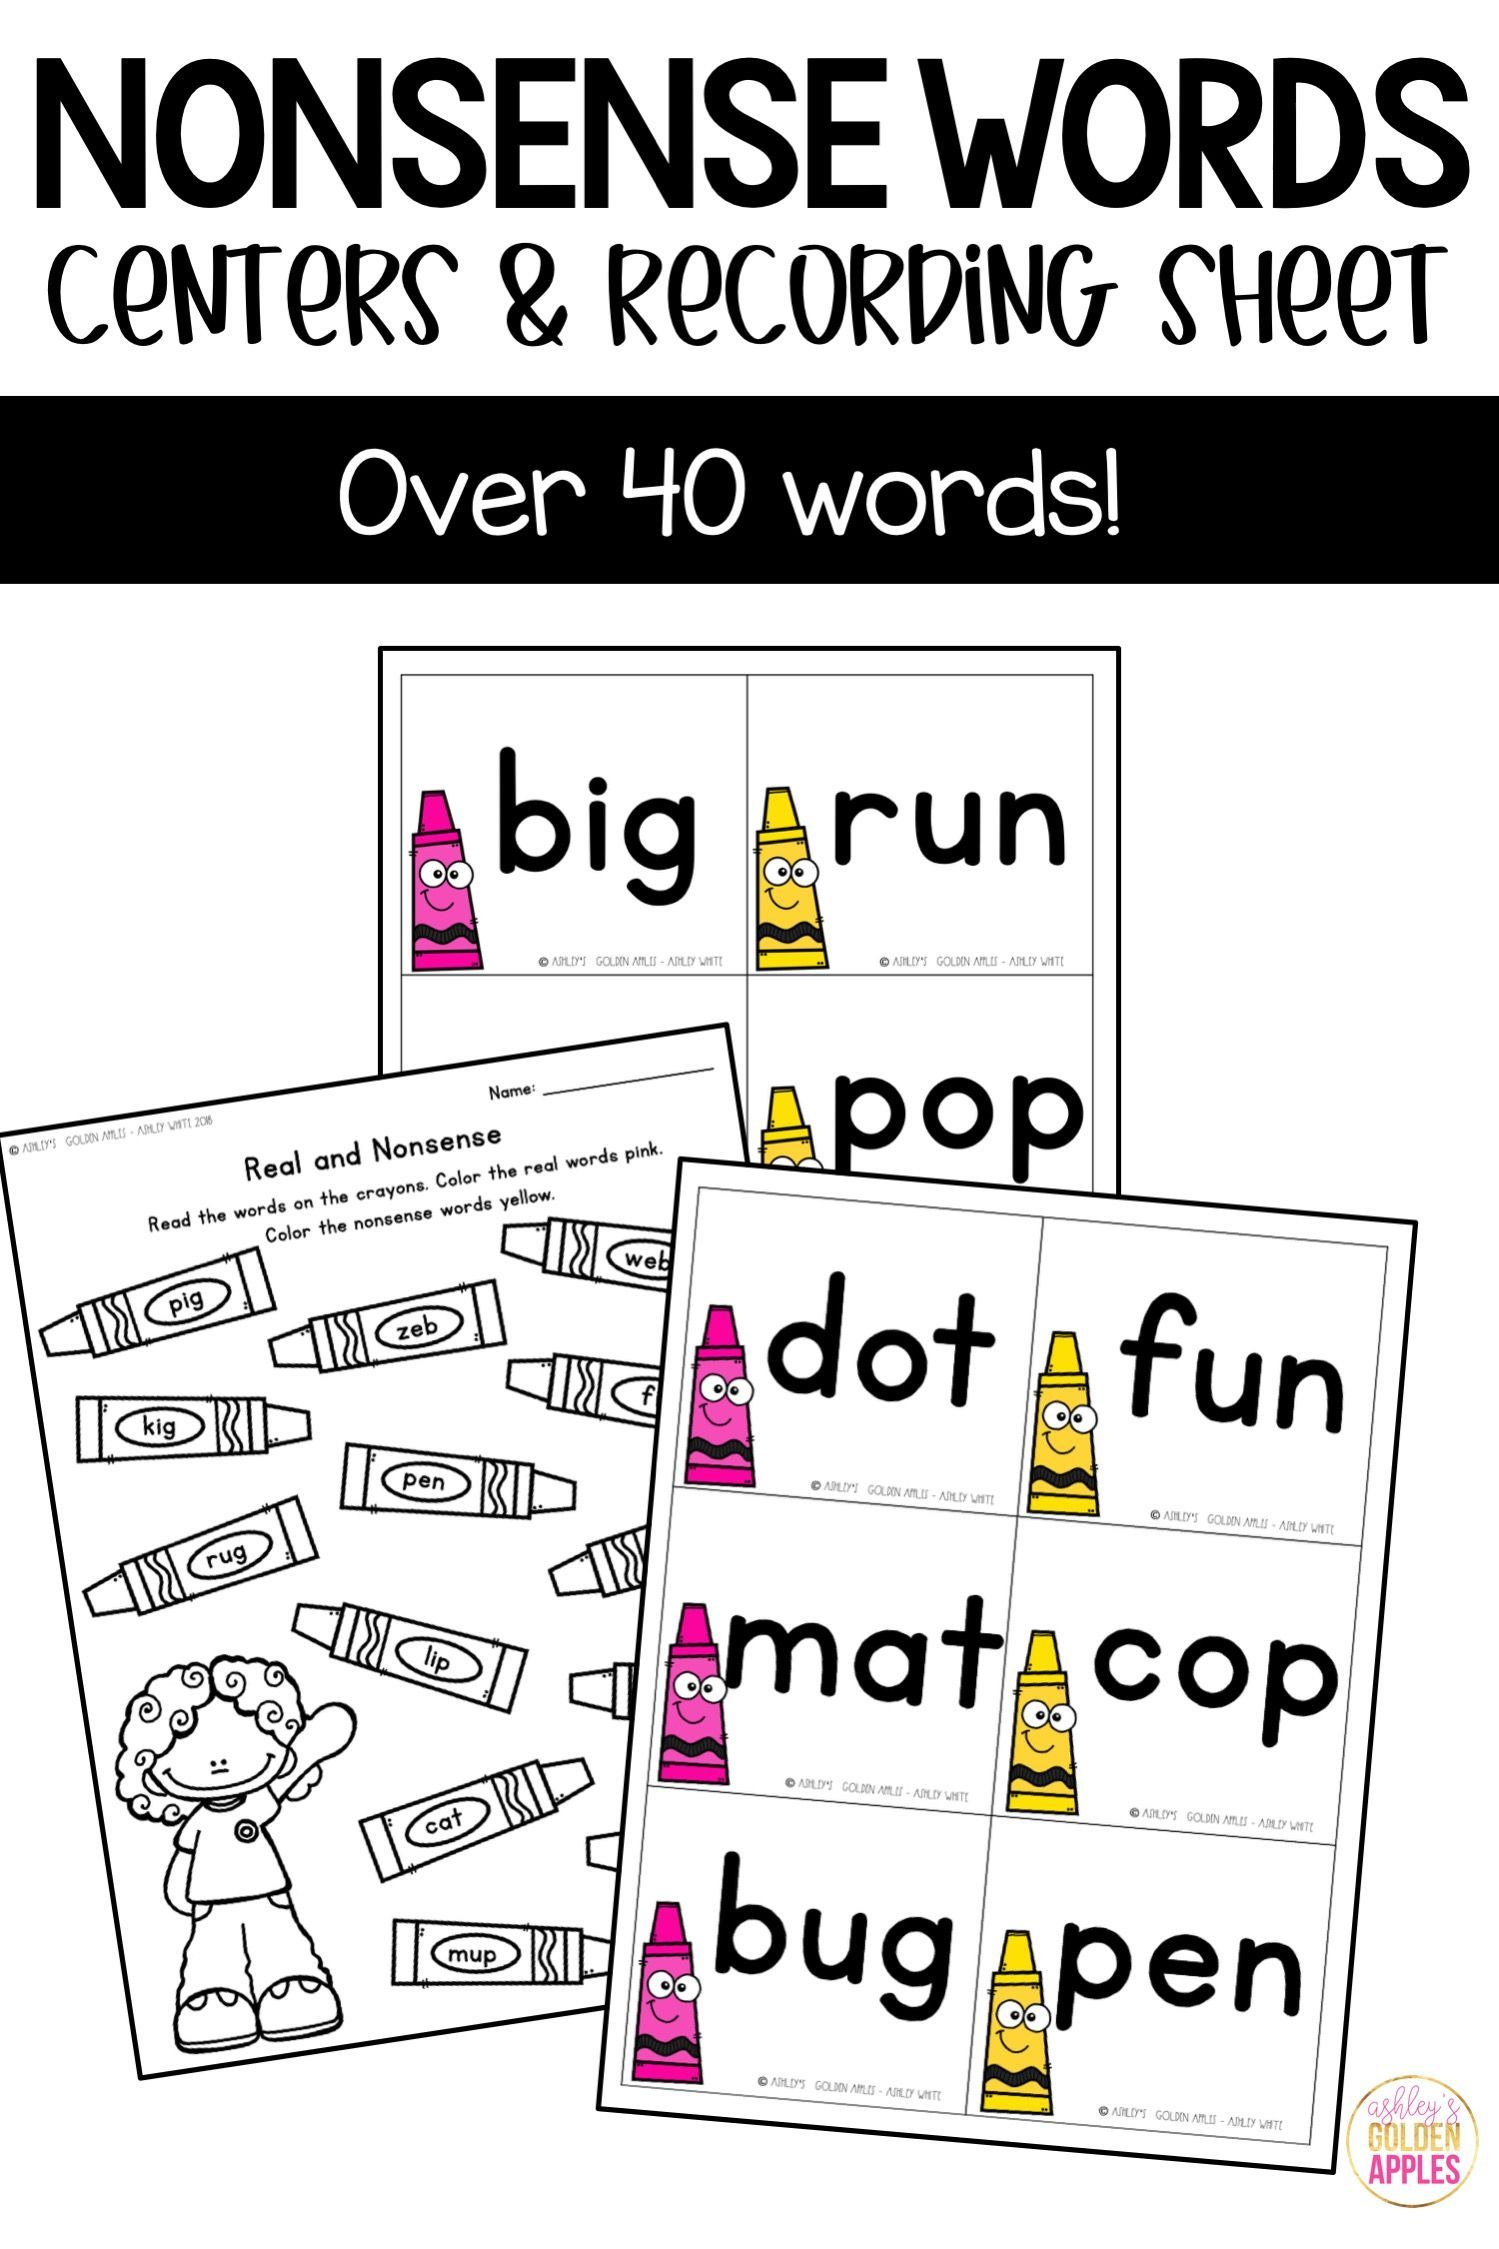 Nonsense Words Are A Great Way To Practice Sounding Out